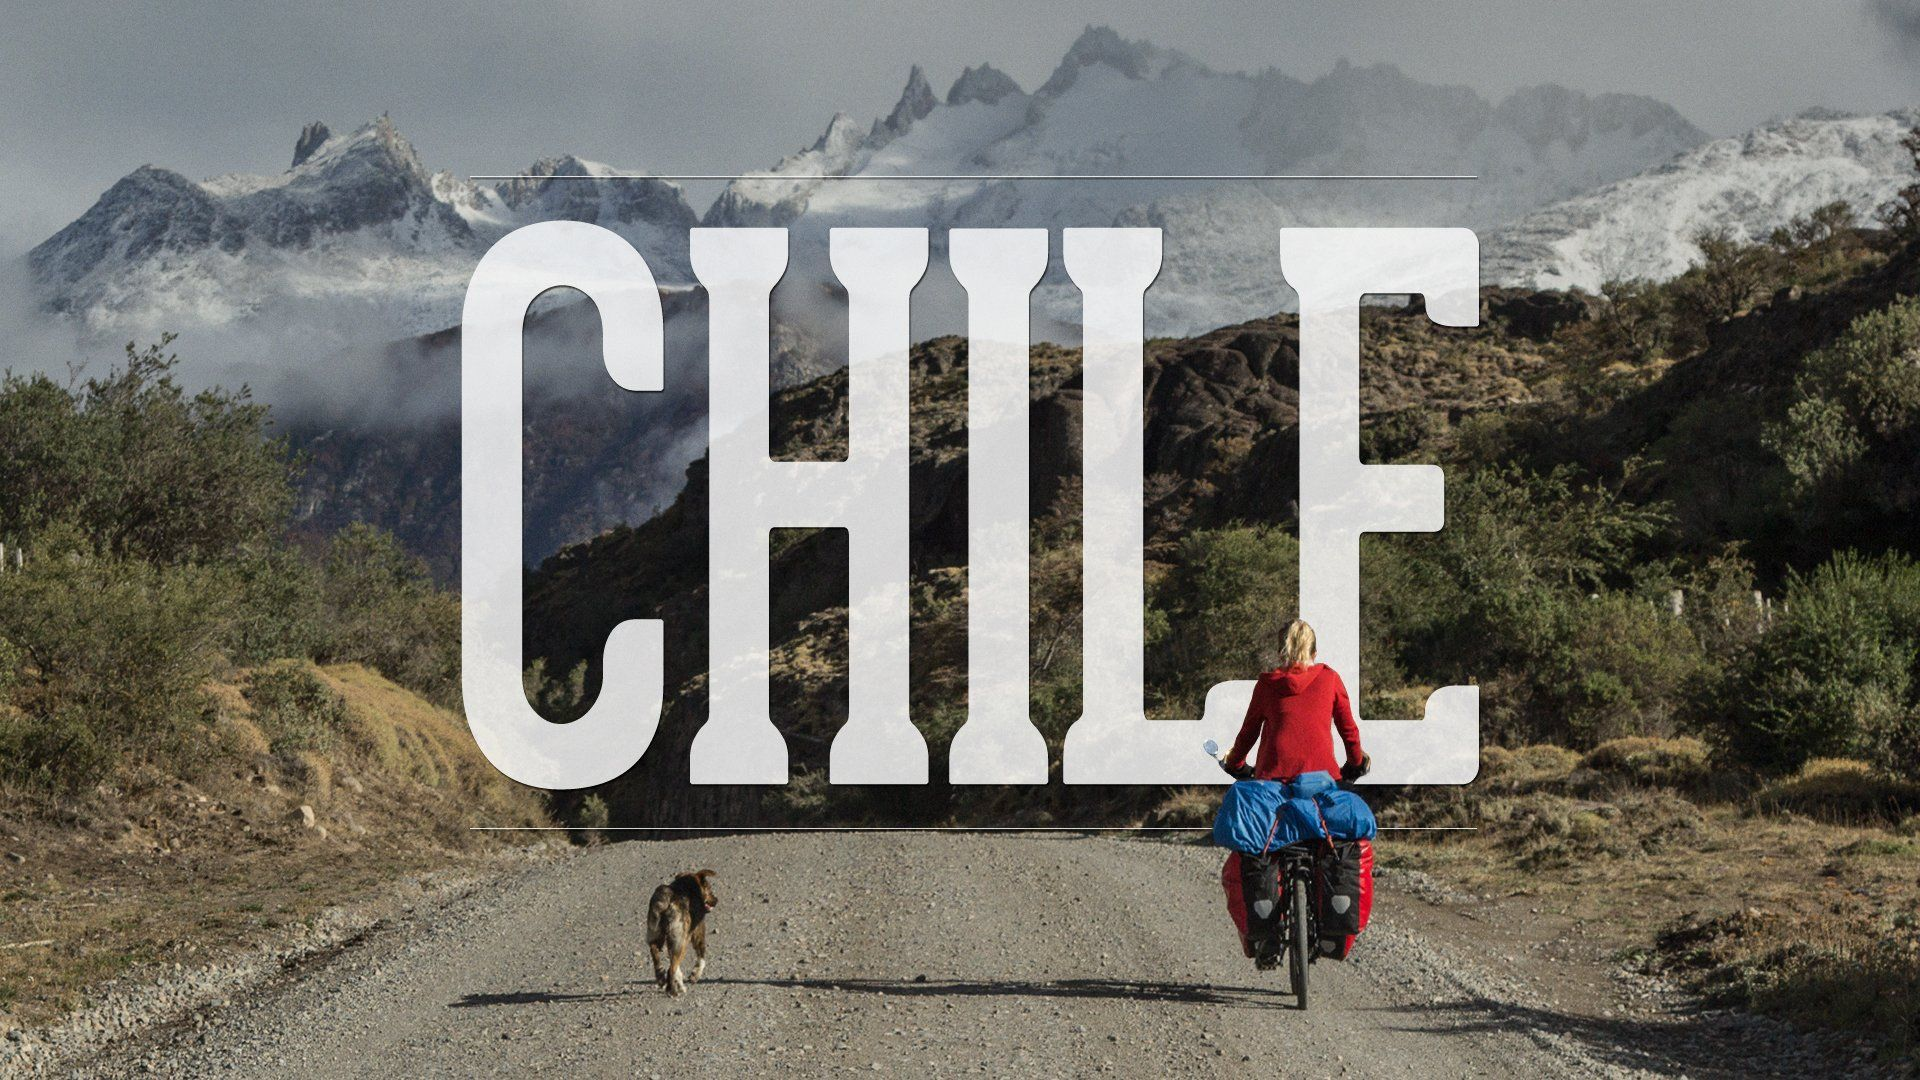 Follow Your Way - Chile Me encanta este video. Como lo extraño…